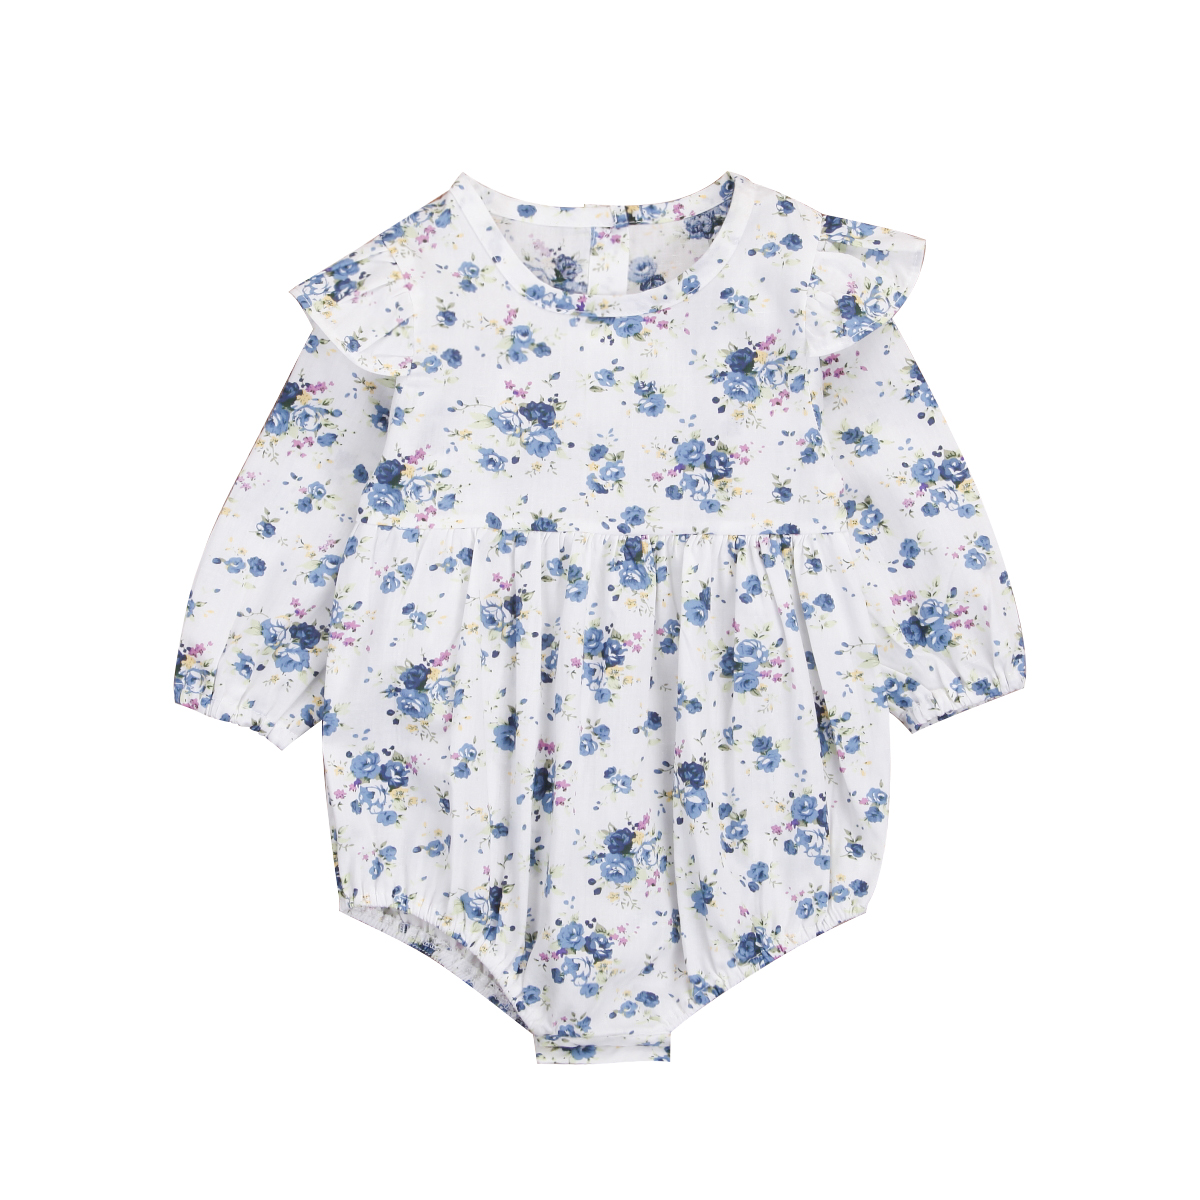 Cute Newborn Toddler Baby Girl Floral Romper Fly Long Sleeve Floral Jumpsuit Outfits Clothes Spring summer New